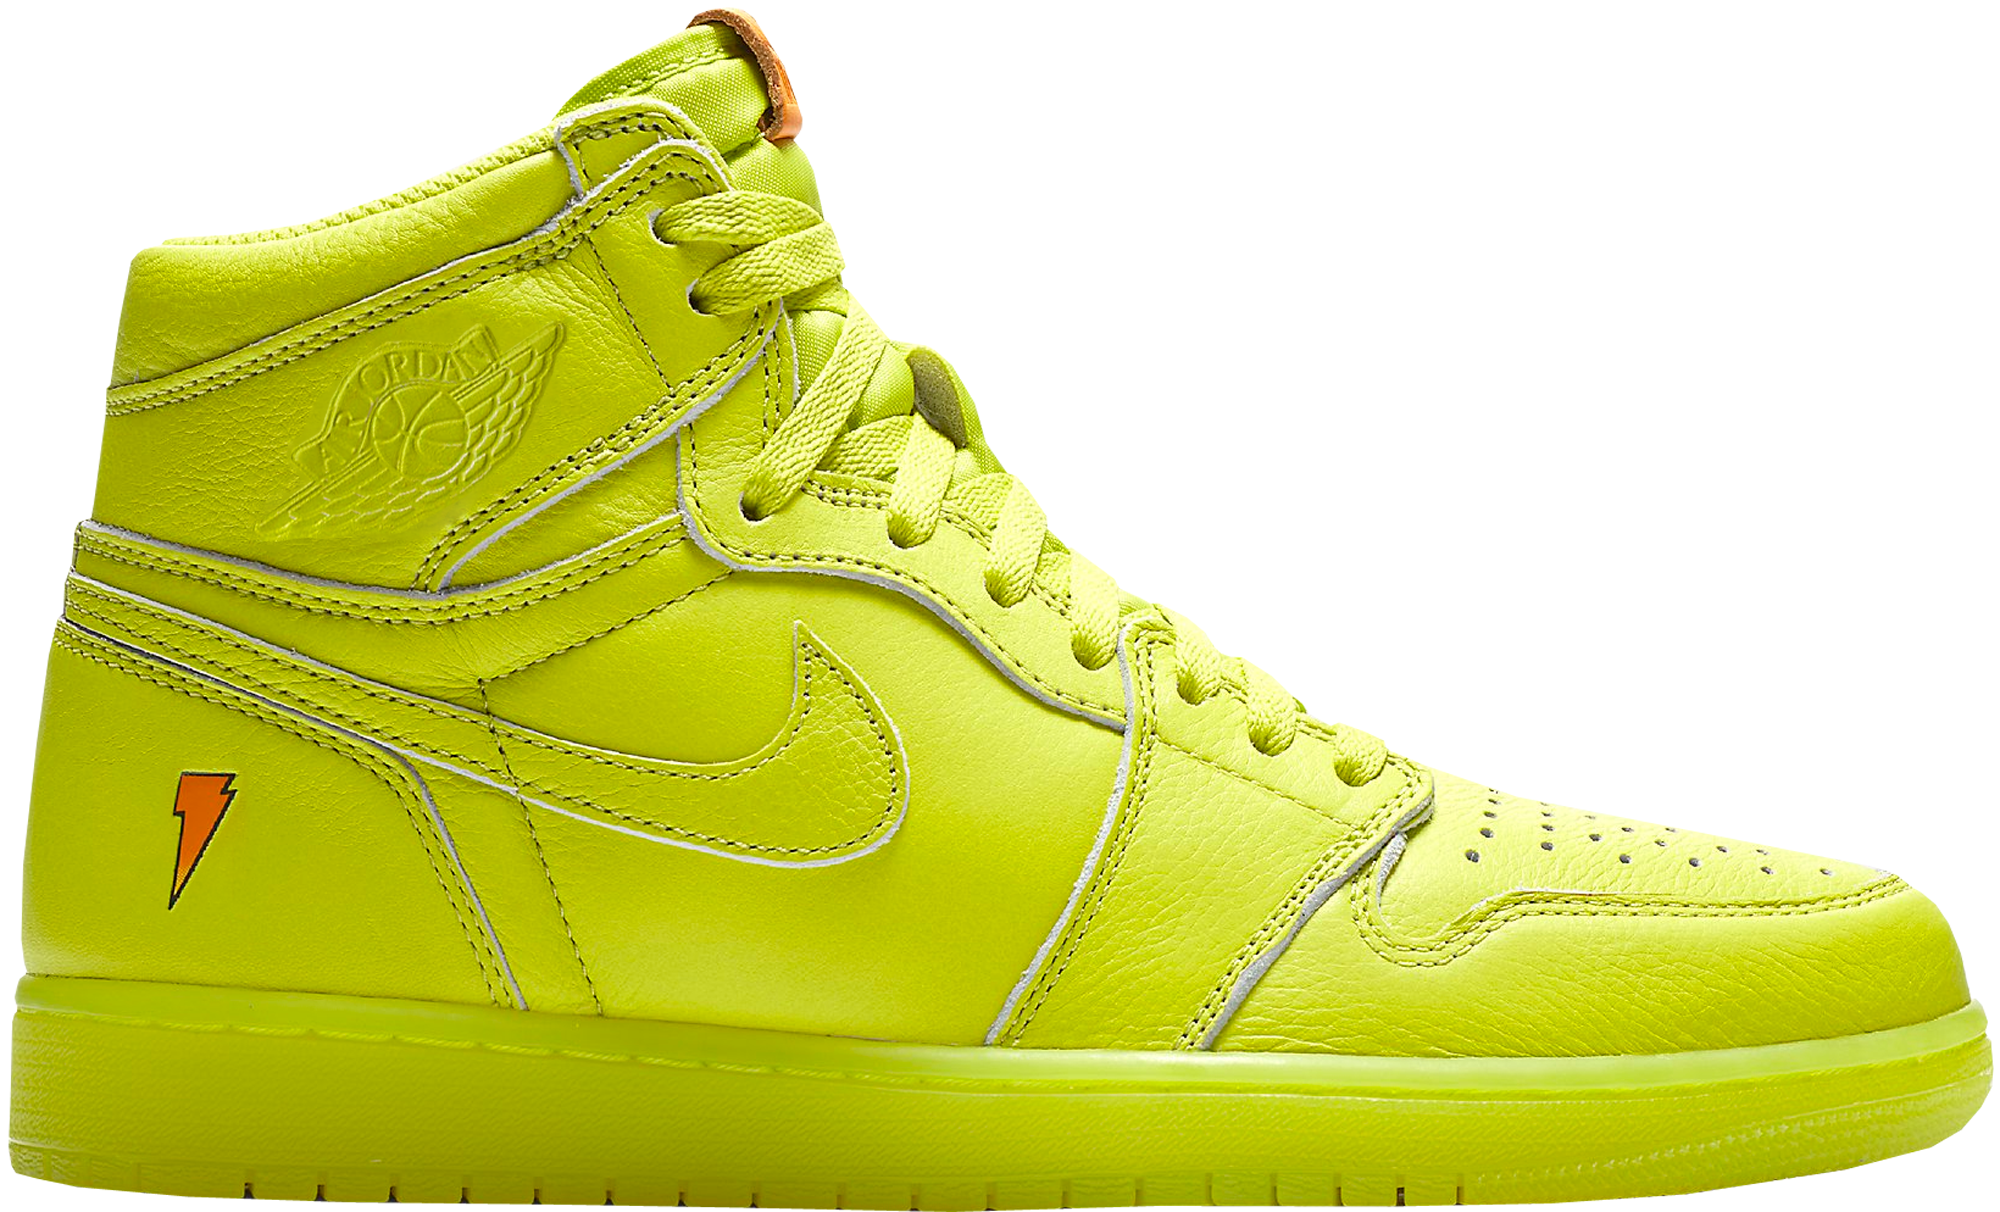 Air Jordan 1 High Mâche Gatorade De